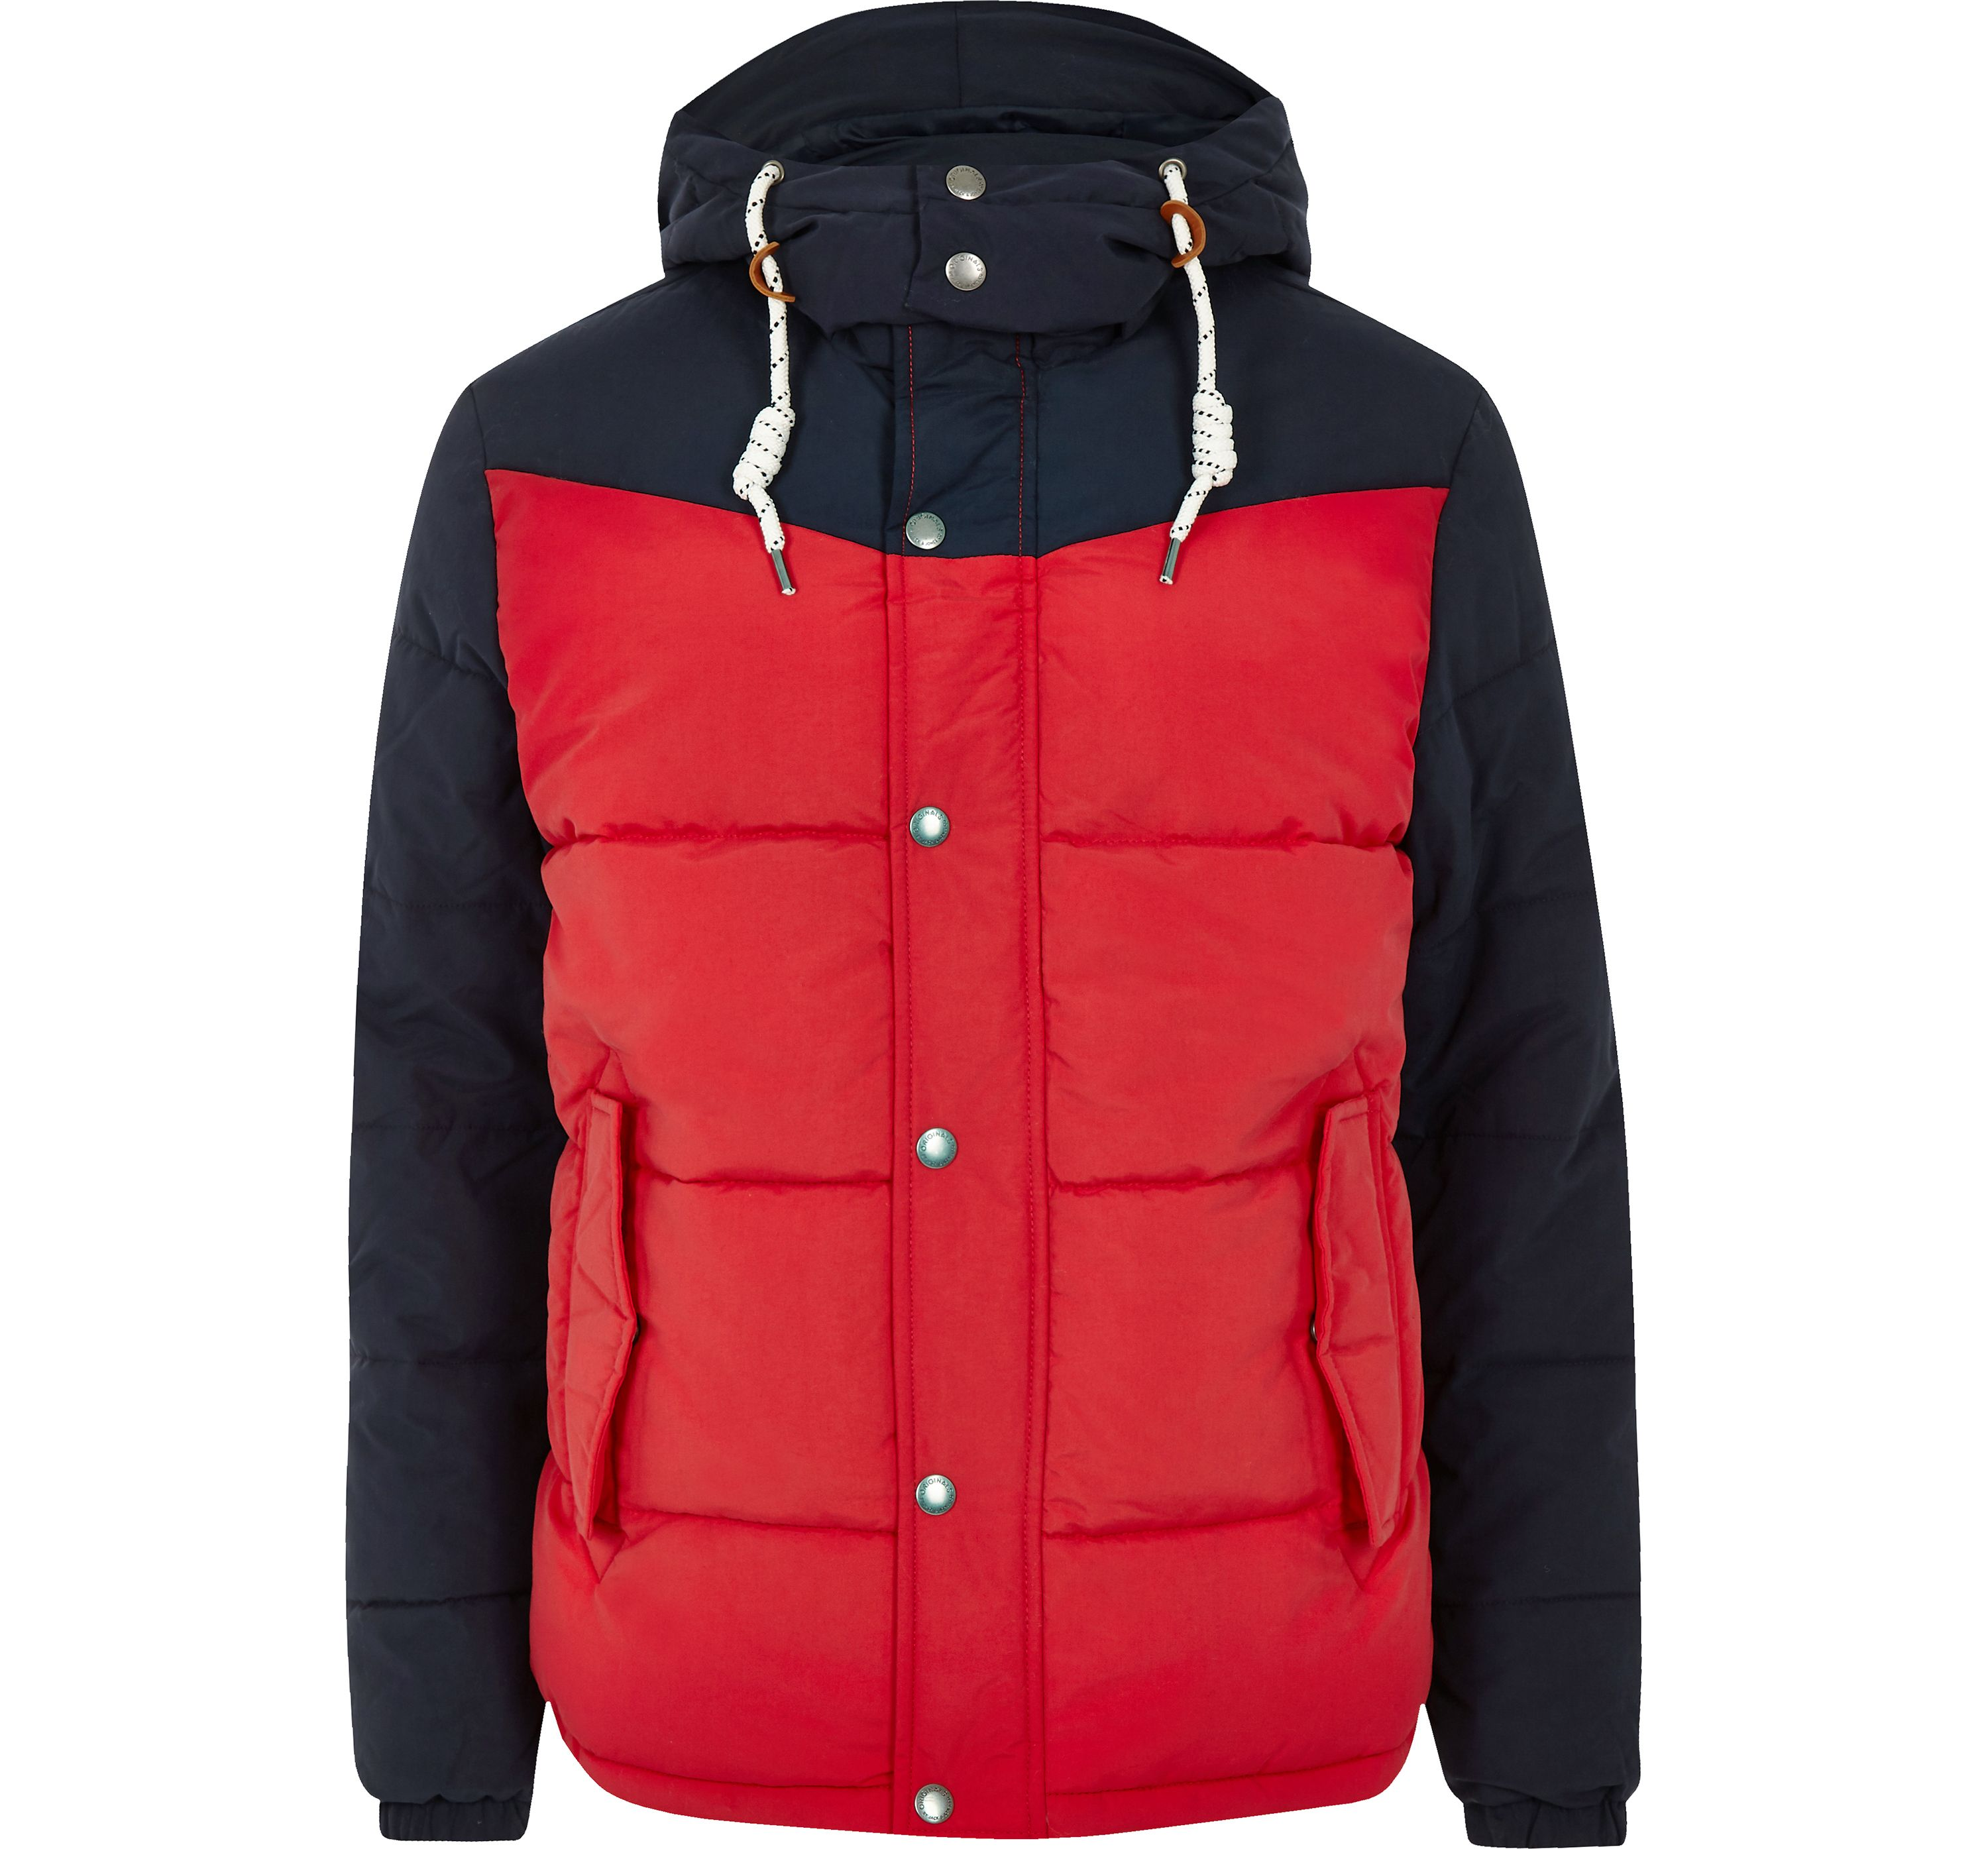 River Island Mens Jack and Jones Red hooded puffer jacket